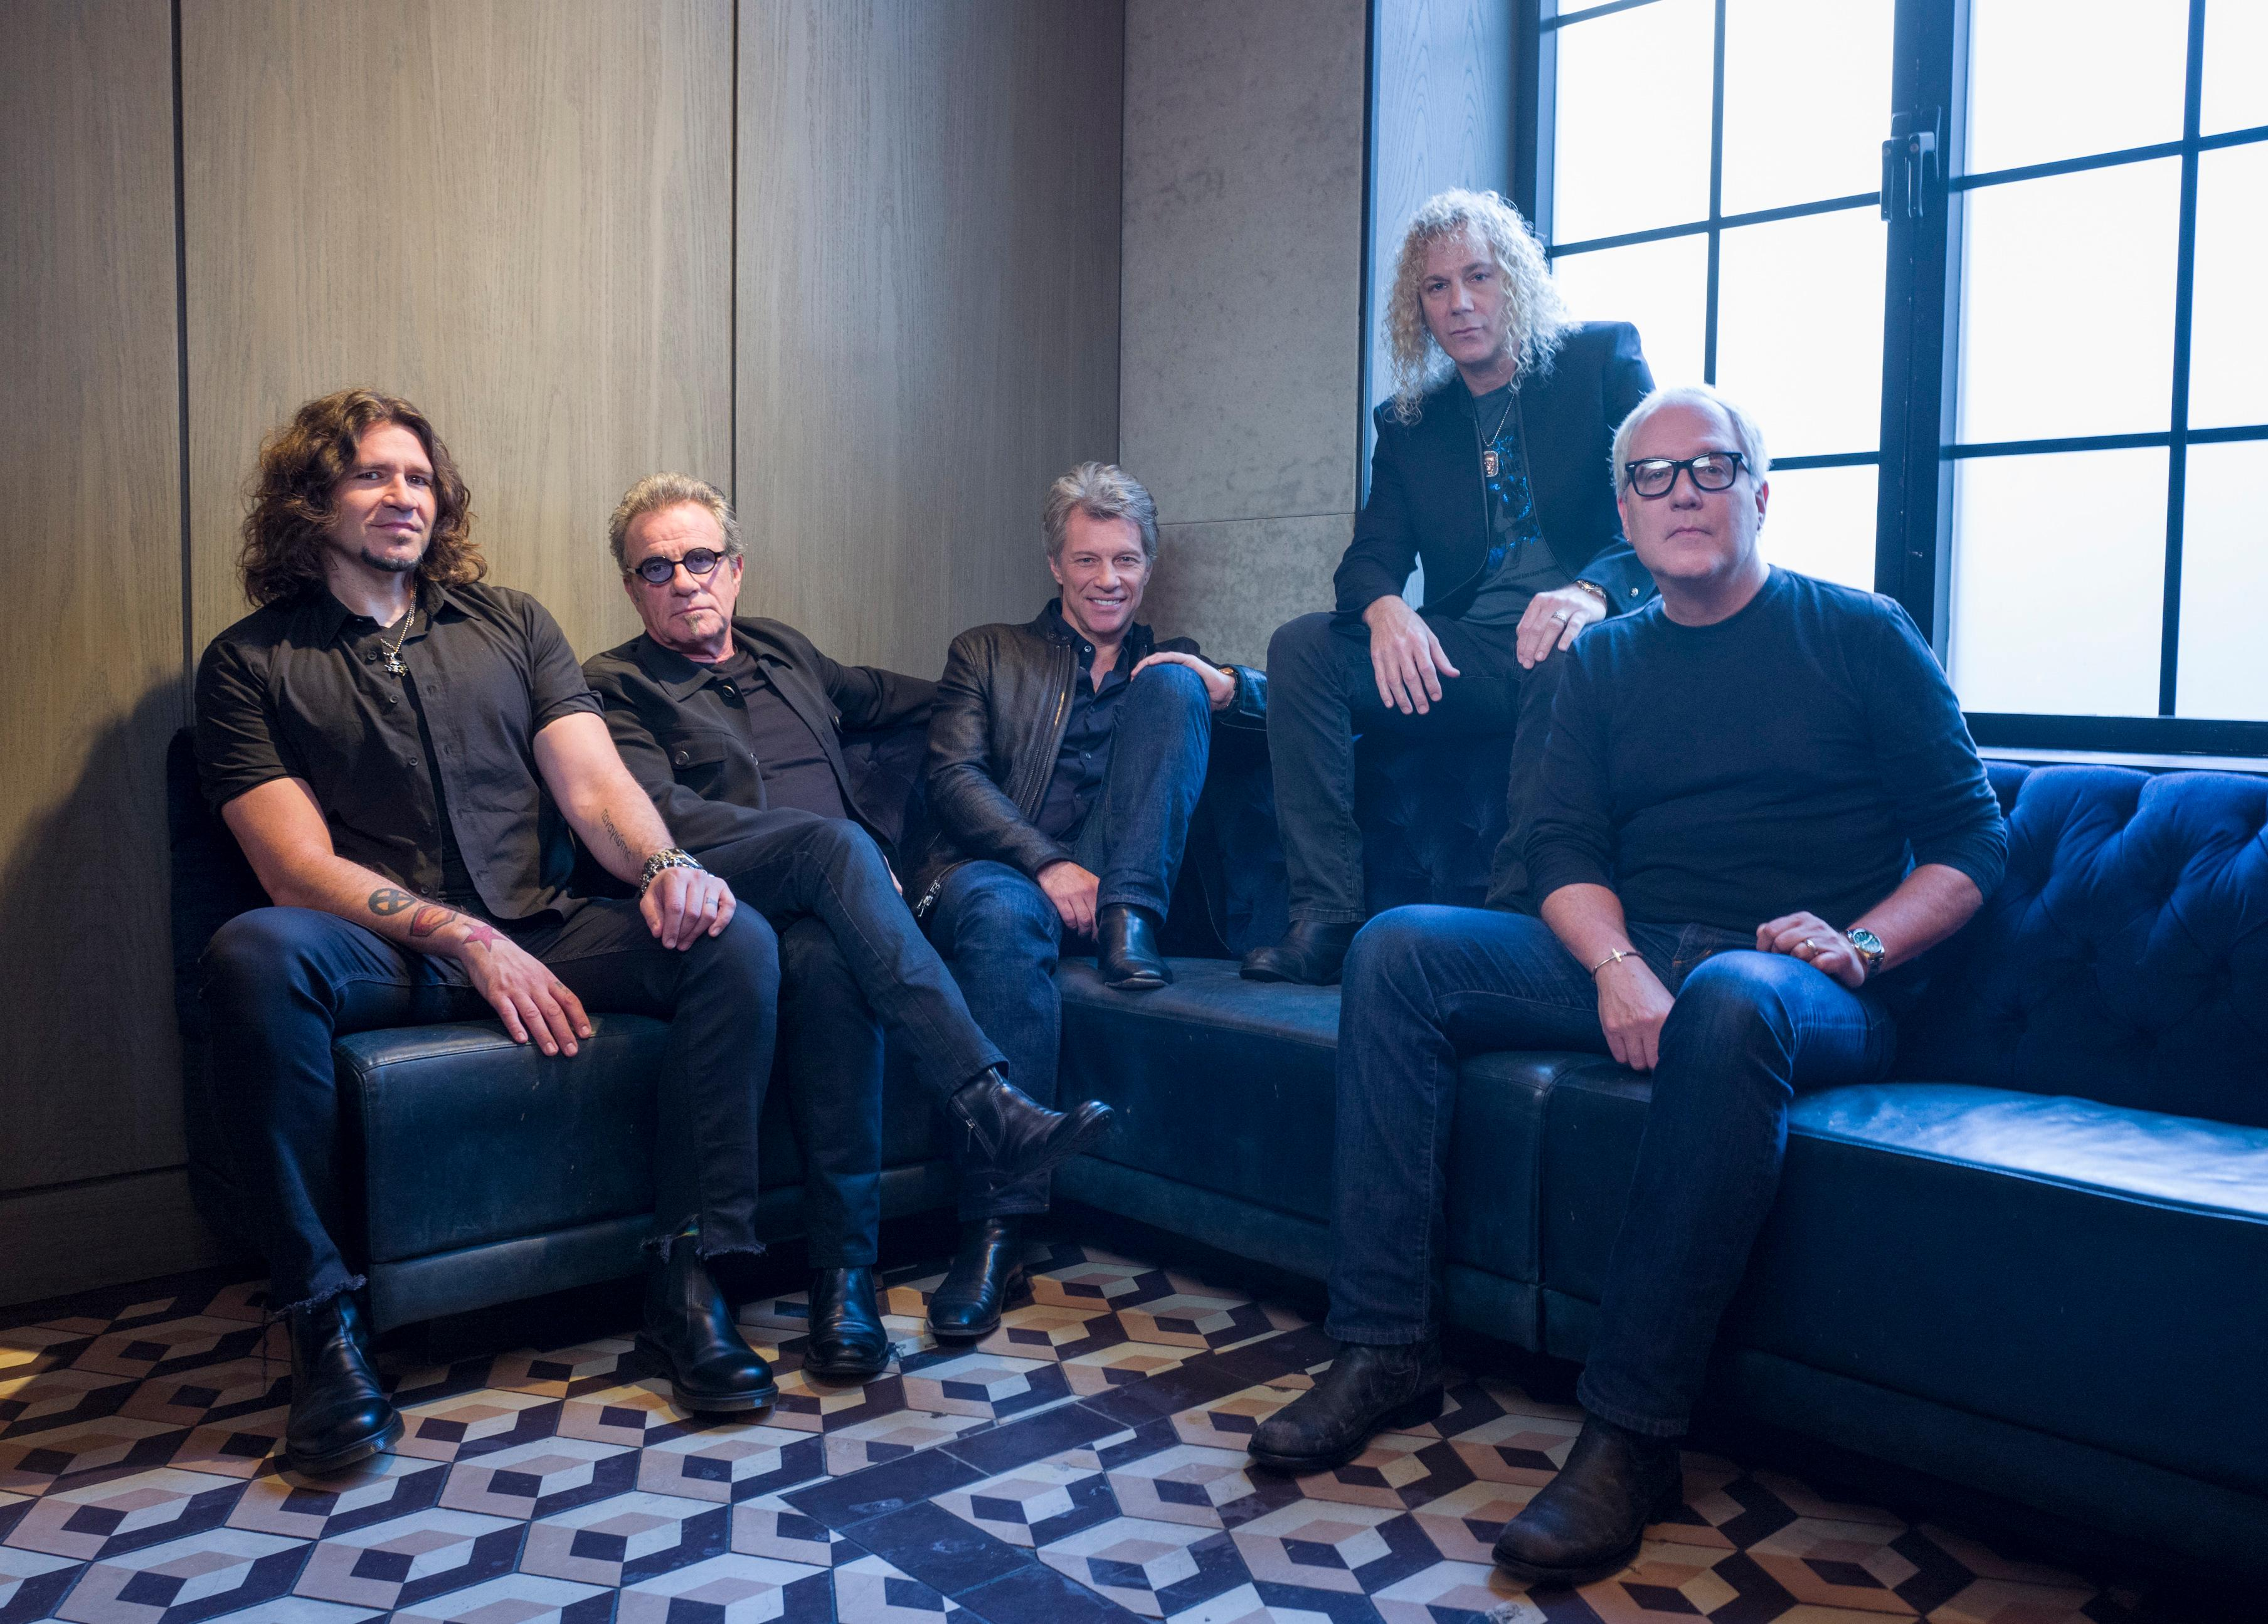 FILE - In this Oct. 19, 2016 file photo, members of Bon Jovi from left, Phil X, Tico Torres, Jon Bon Jovi, David Bryan and Hugh McDonald pose for a portrait in New York. The band will be inducted into the Rock and Roll Hall of Fame on April 14, 2018 in Cleveland, Ohio.                   (Photo by Drew Gurian/Invision/AP, File)